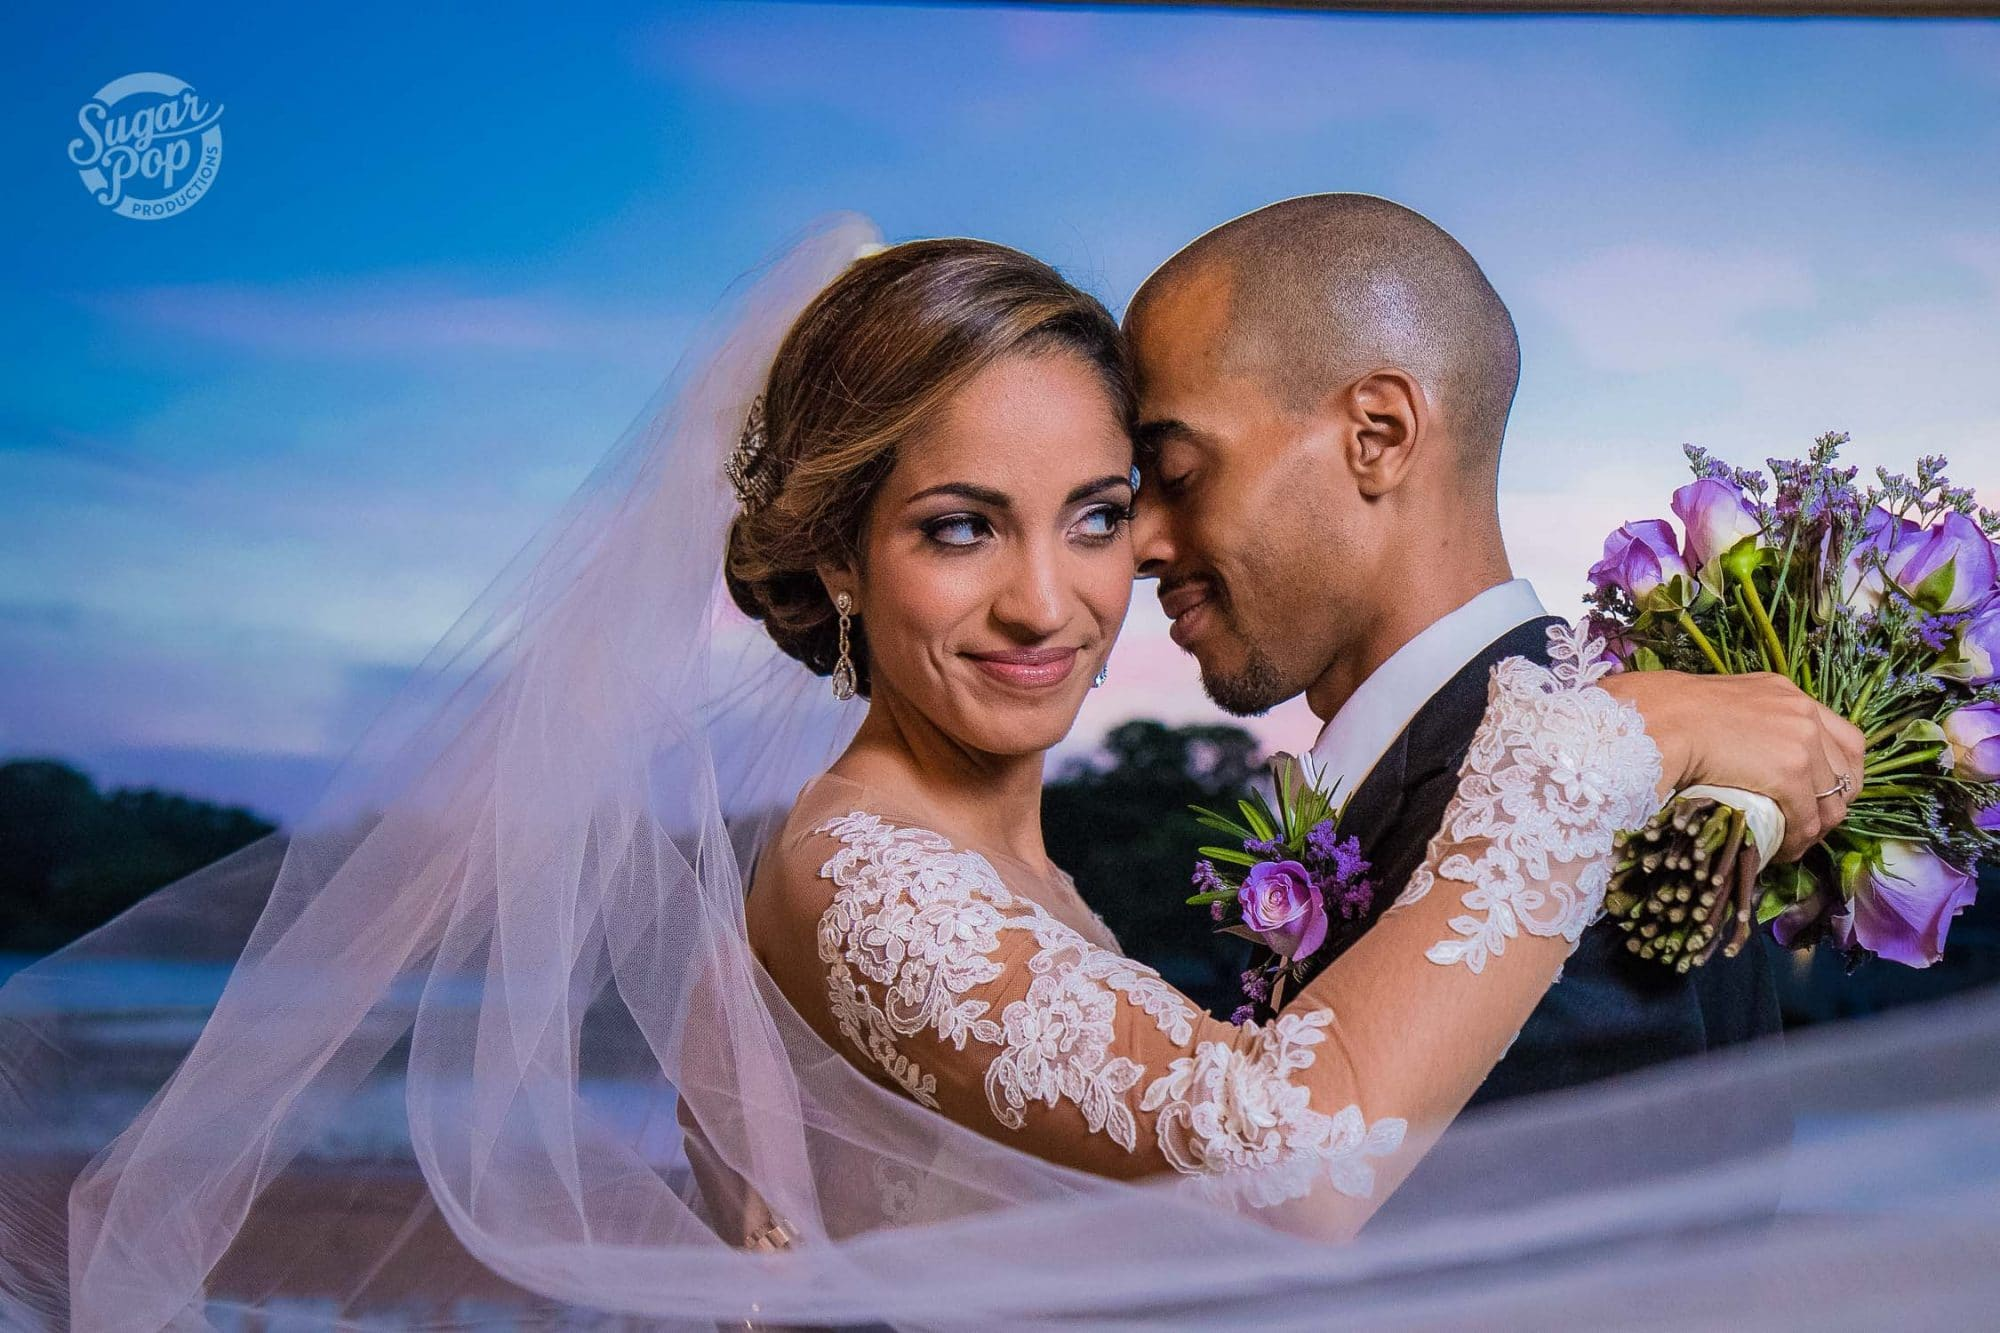 Sugar Pop Productions - bride and groom embracing at sunset